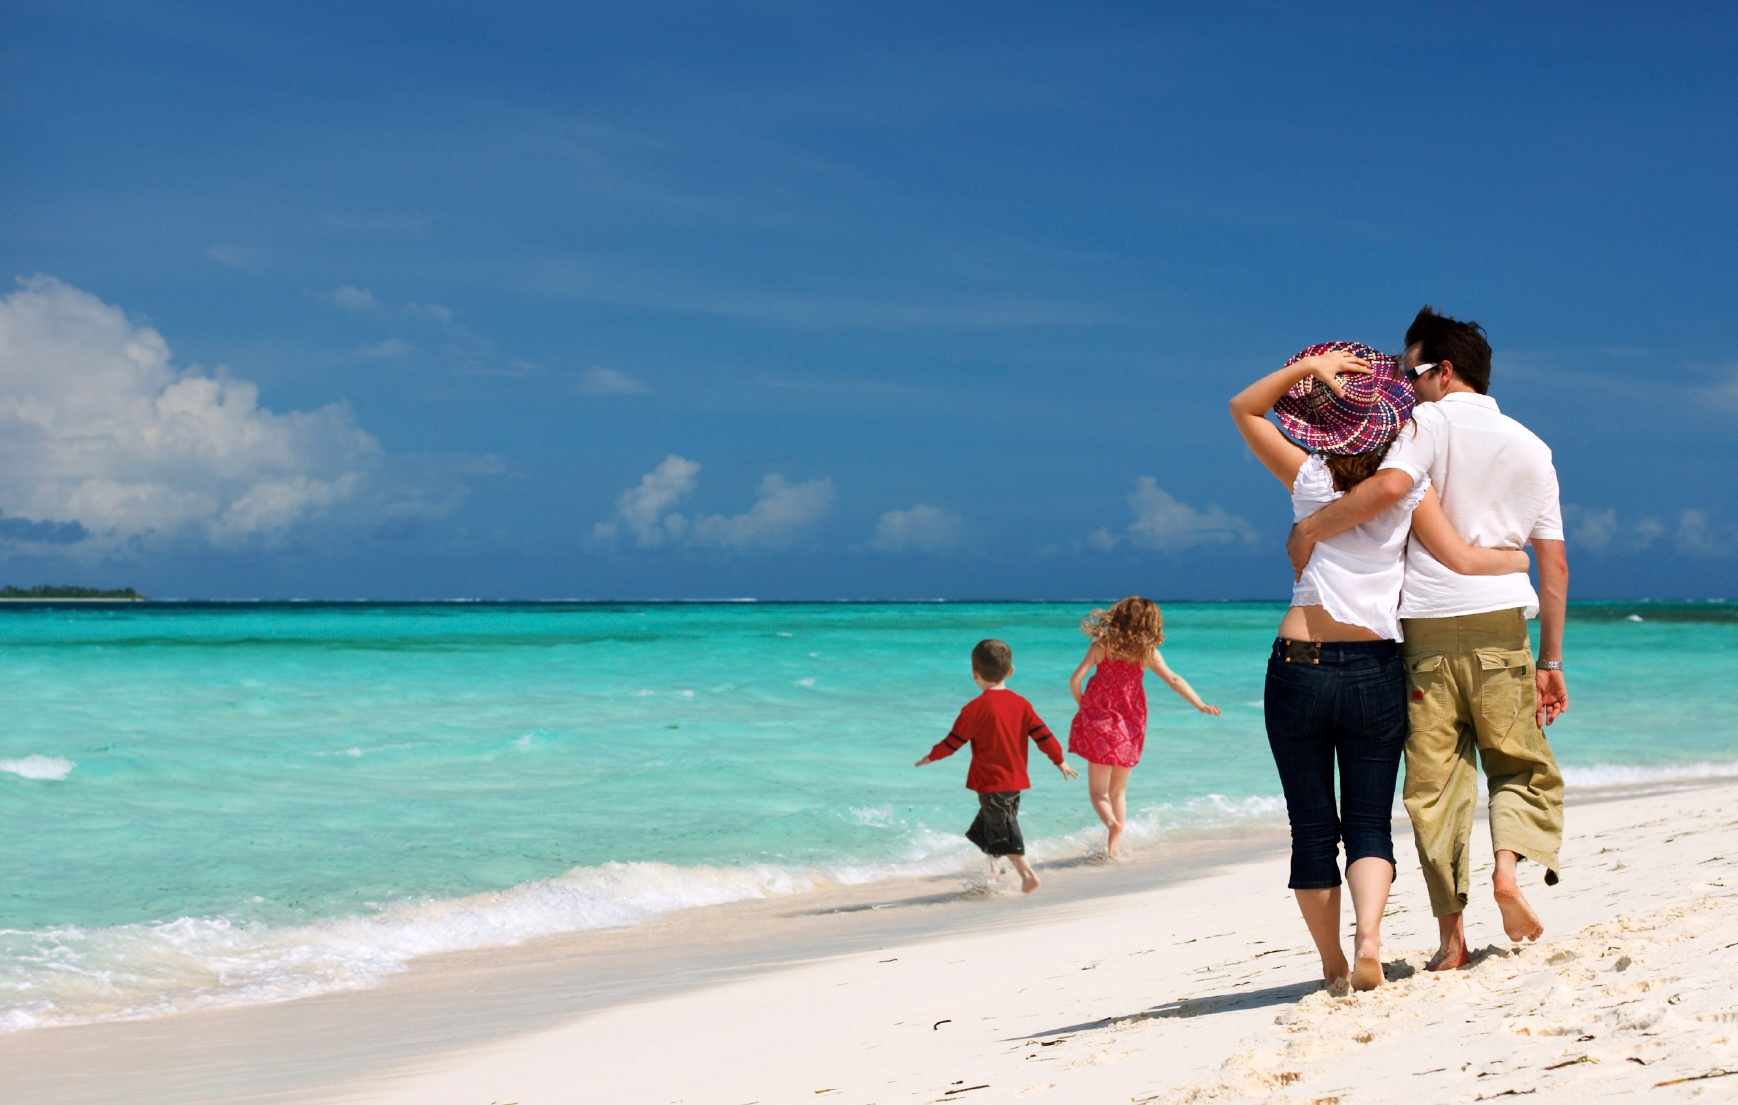 4 Ways Vacation Improves Your Health & Life